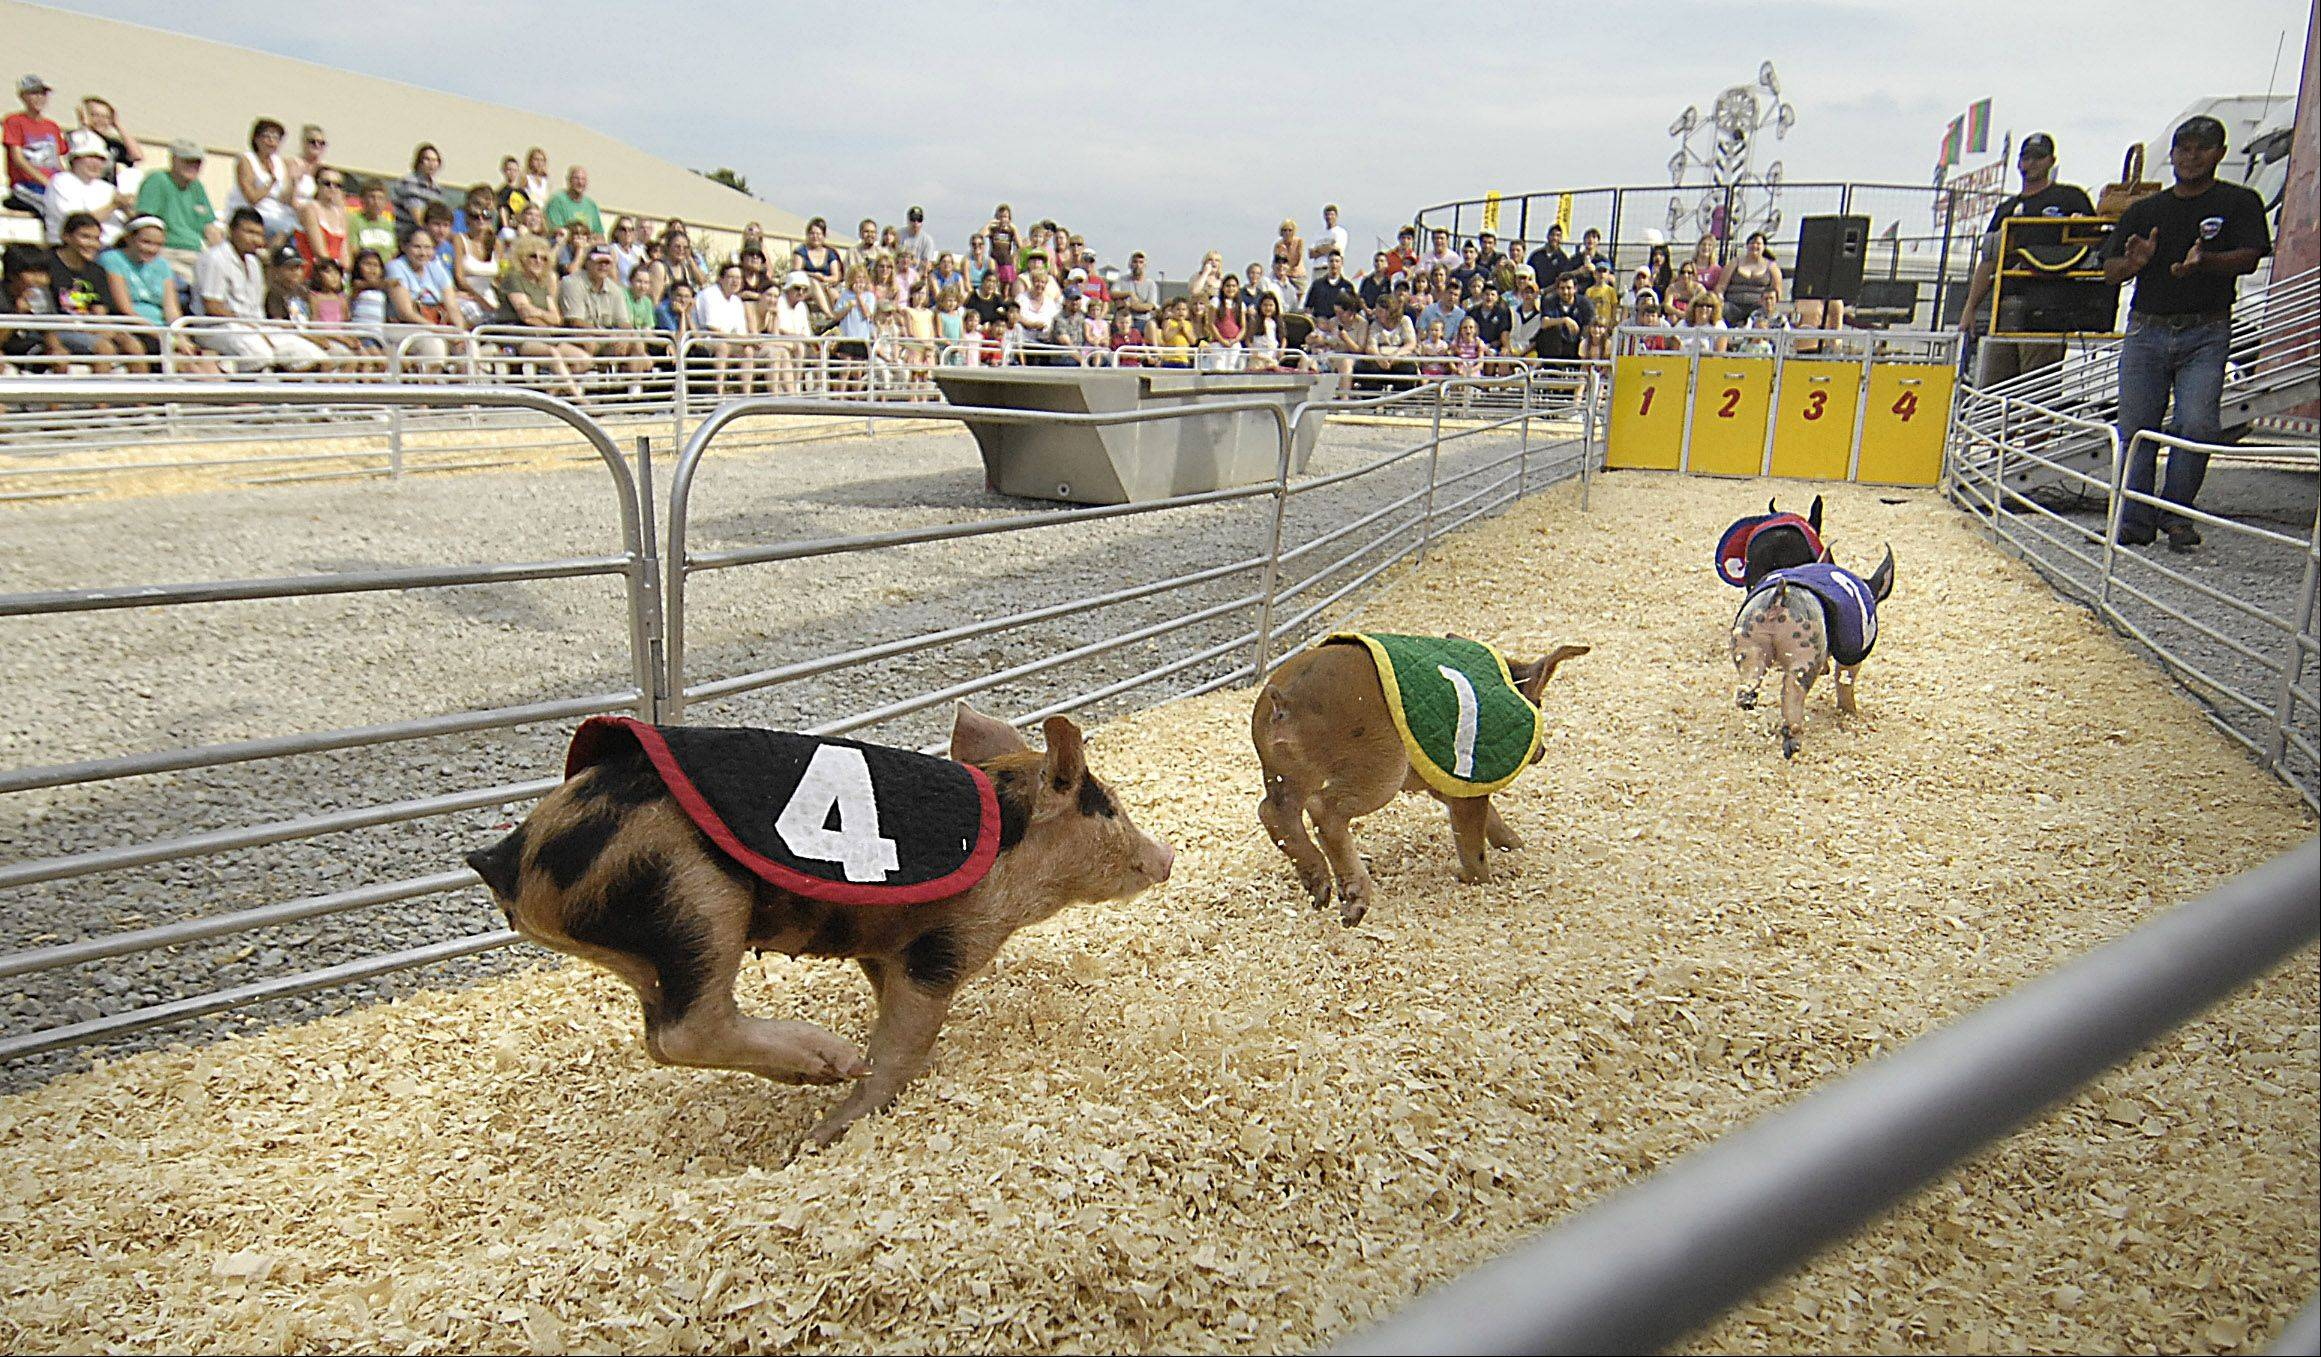 Pigs race around a circle track during a show by the Swifty Swine Productions at the Kane County Fair.